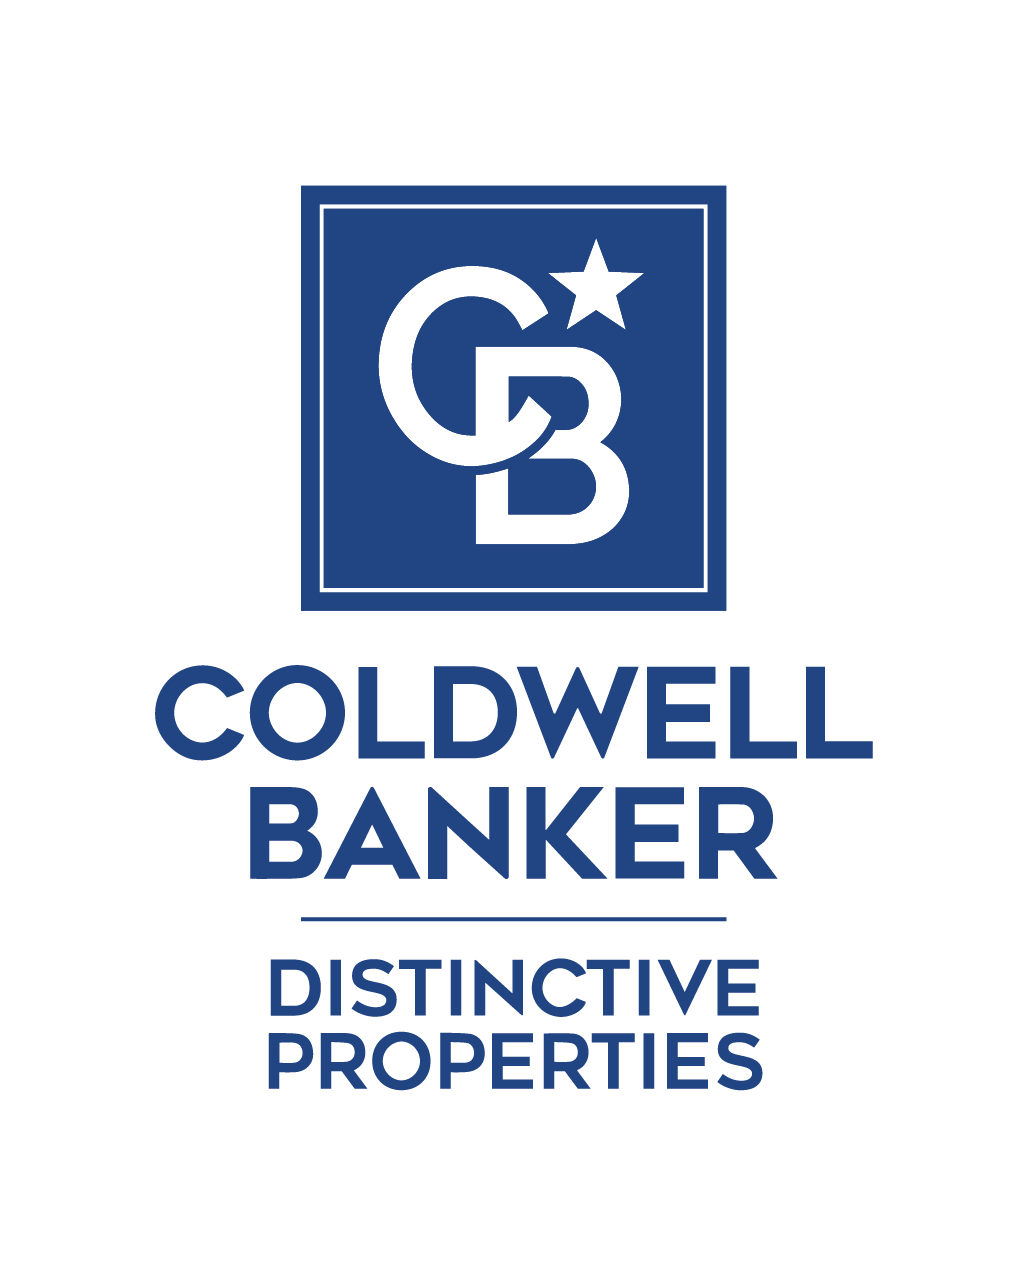 Amanda Owen - Coldwell Banker Distinctive Properties